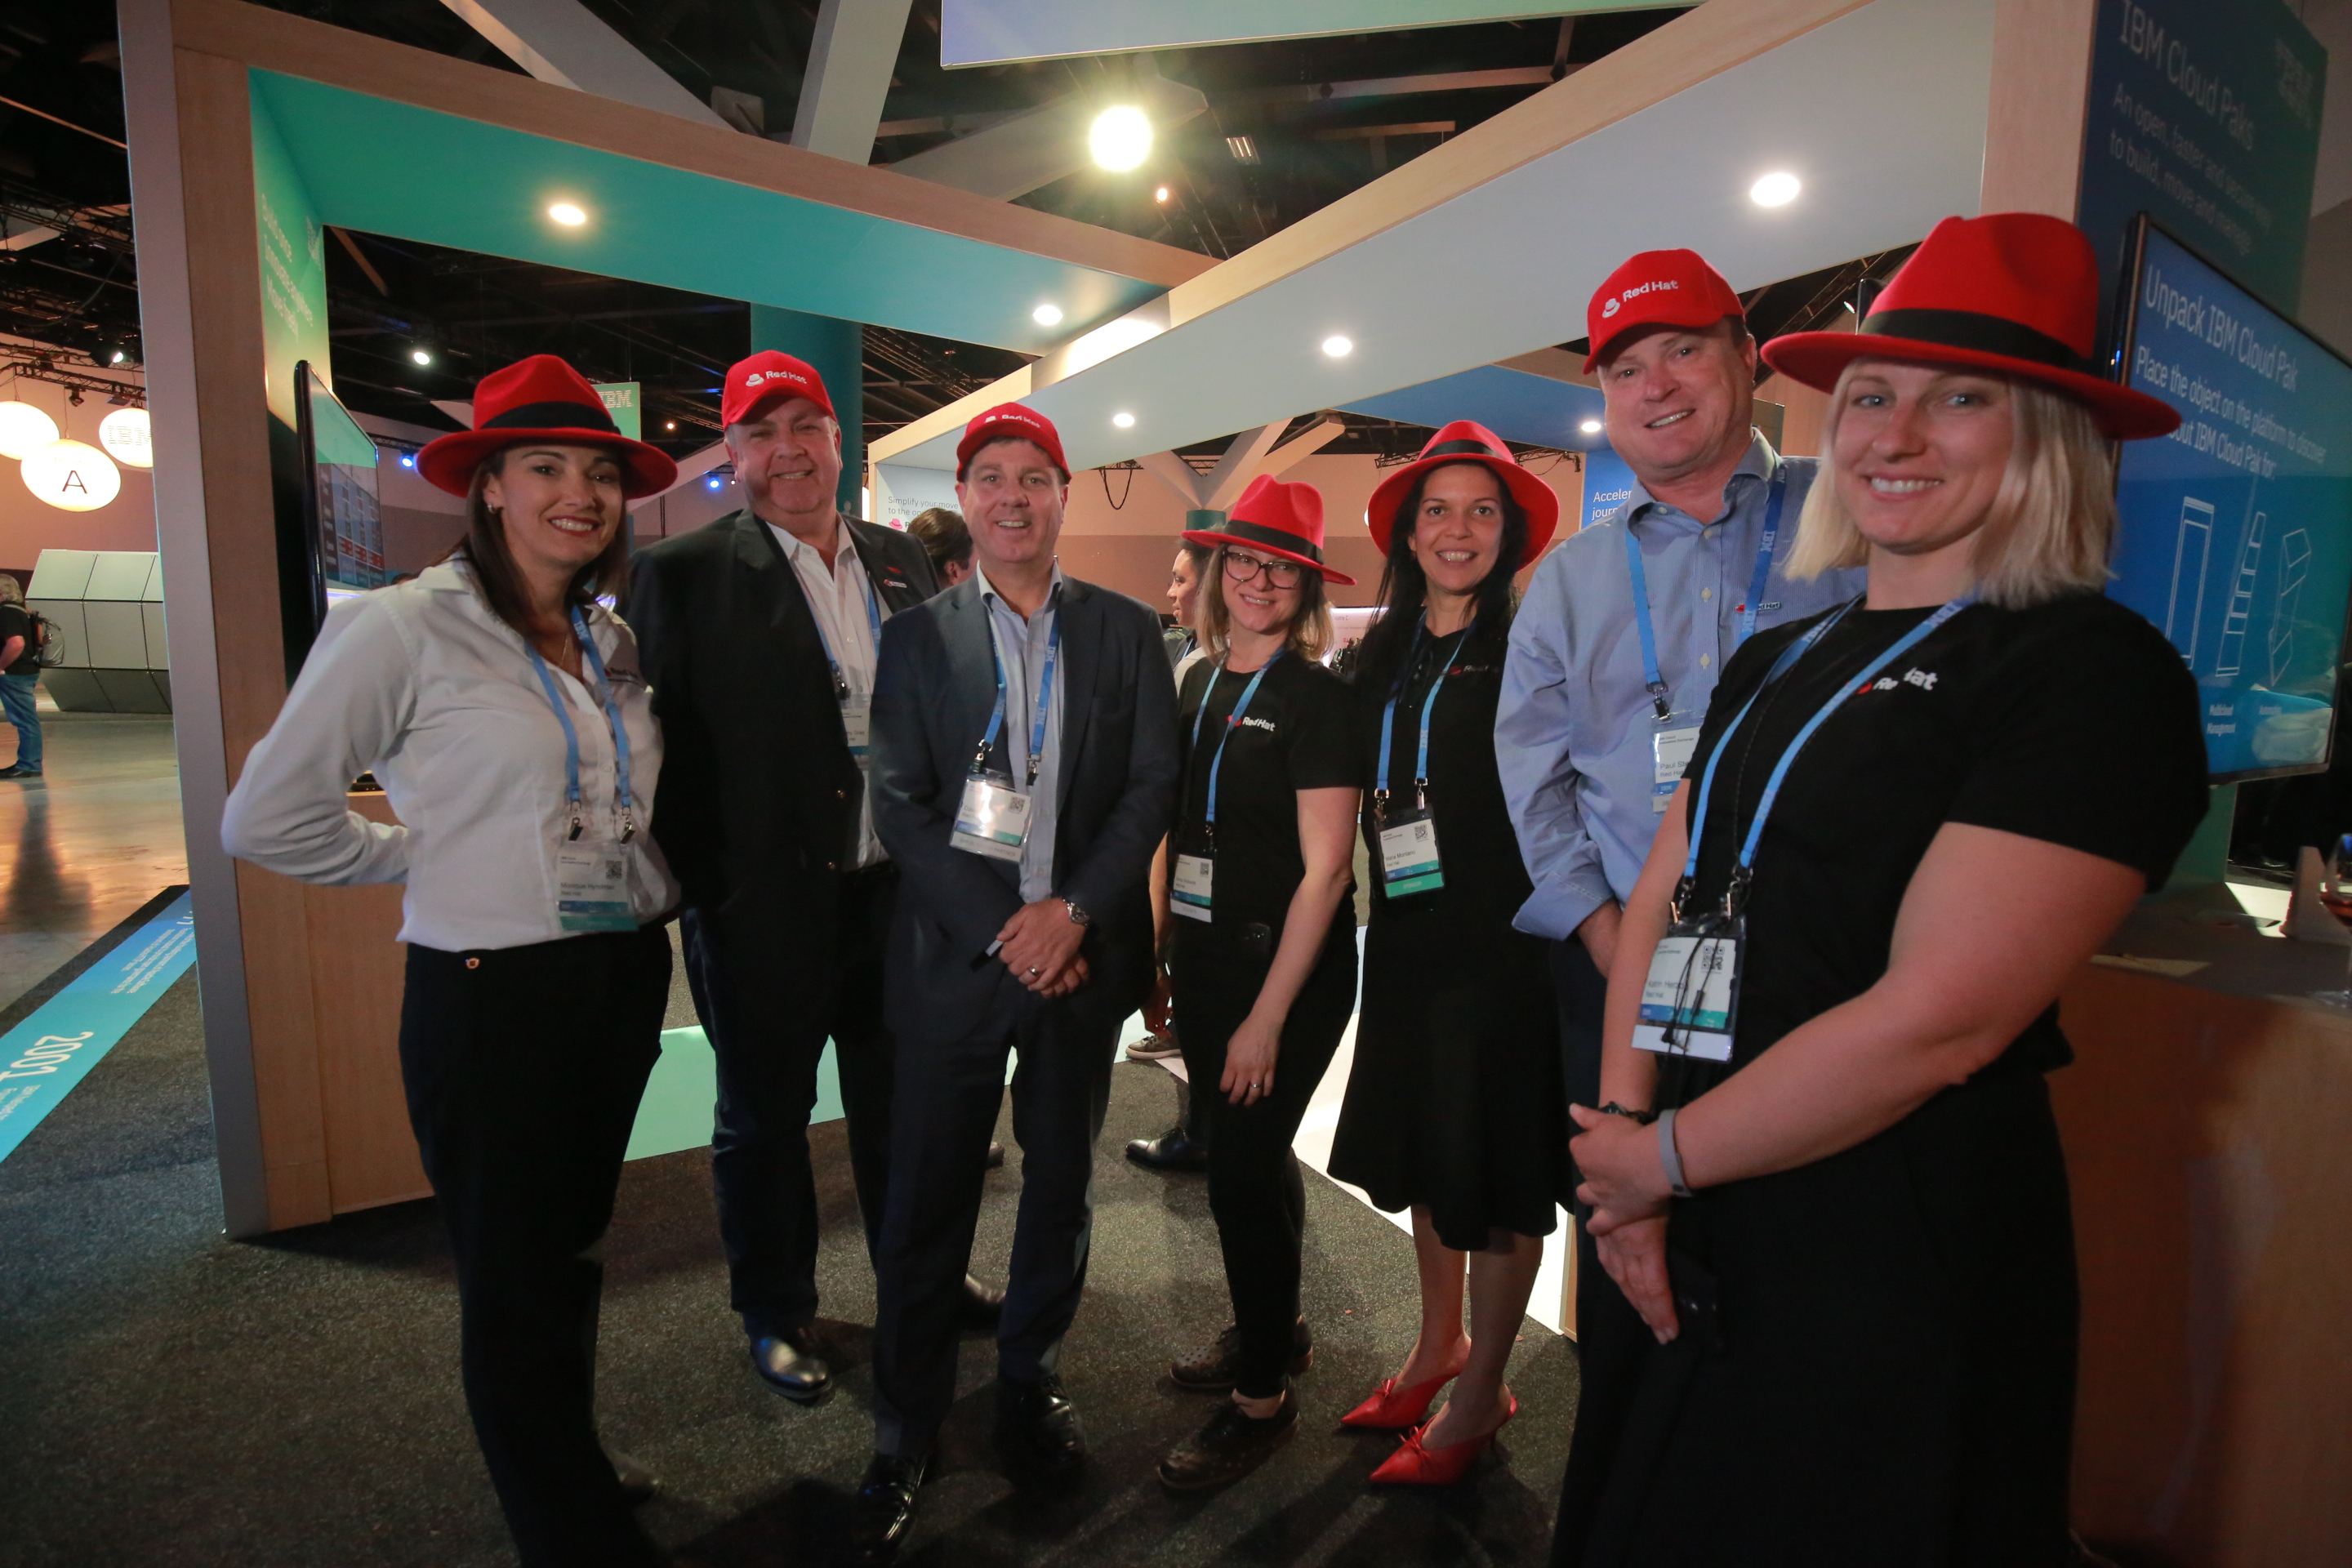 The Red Hat team